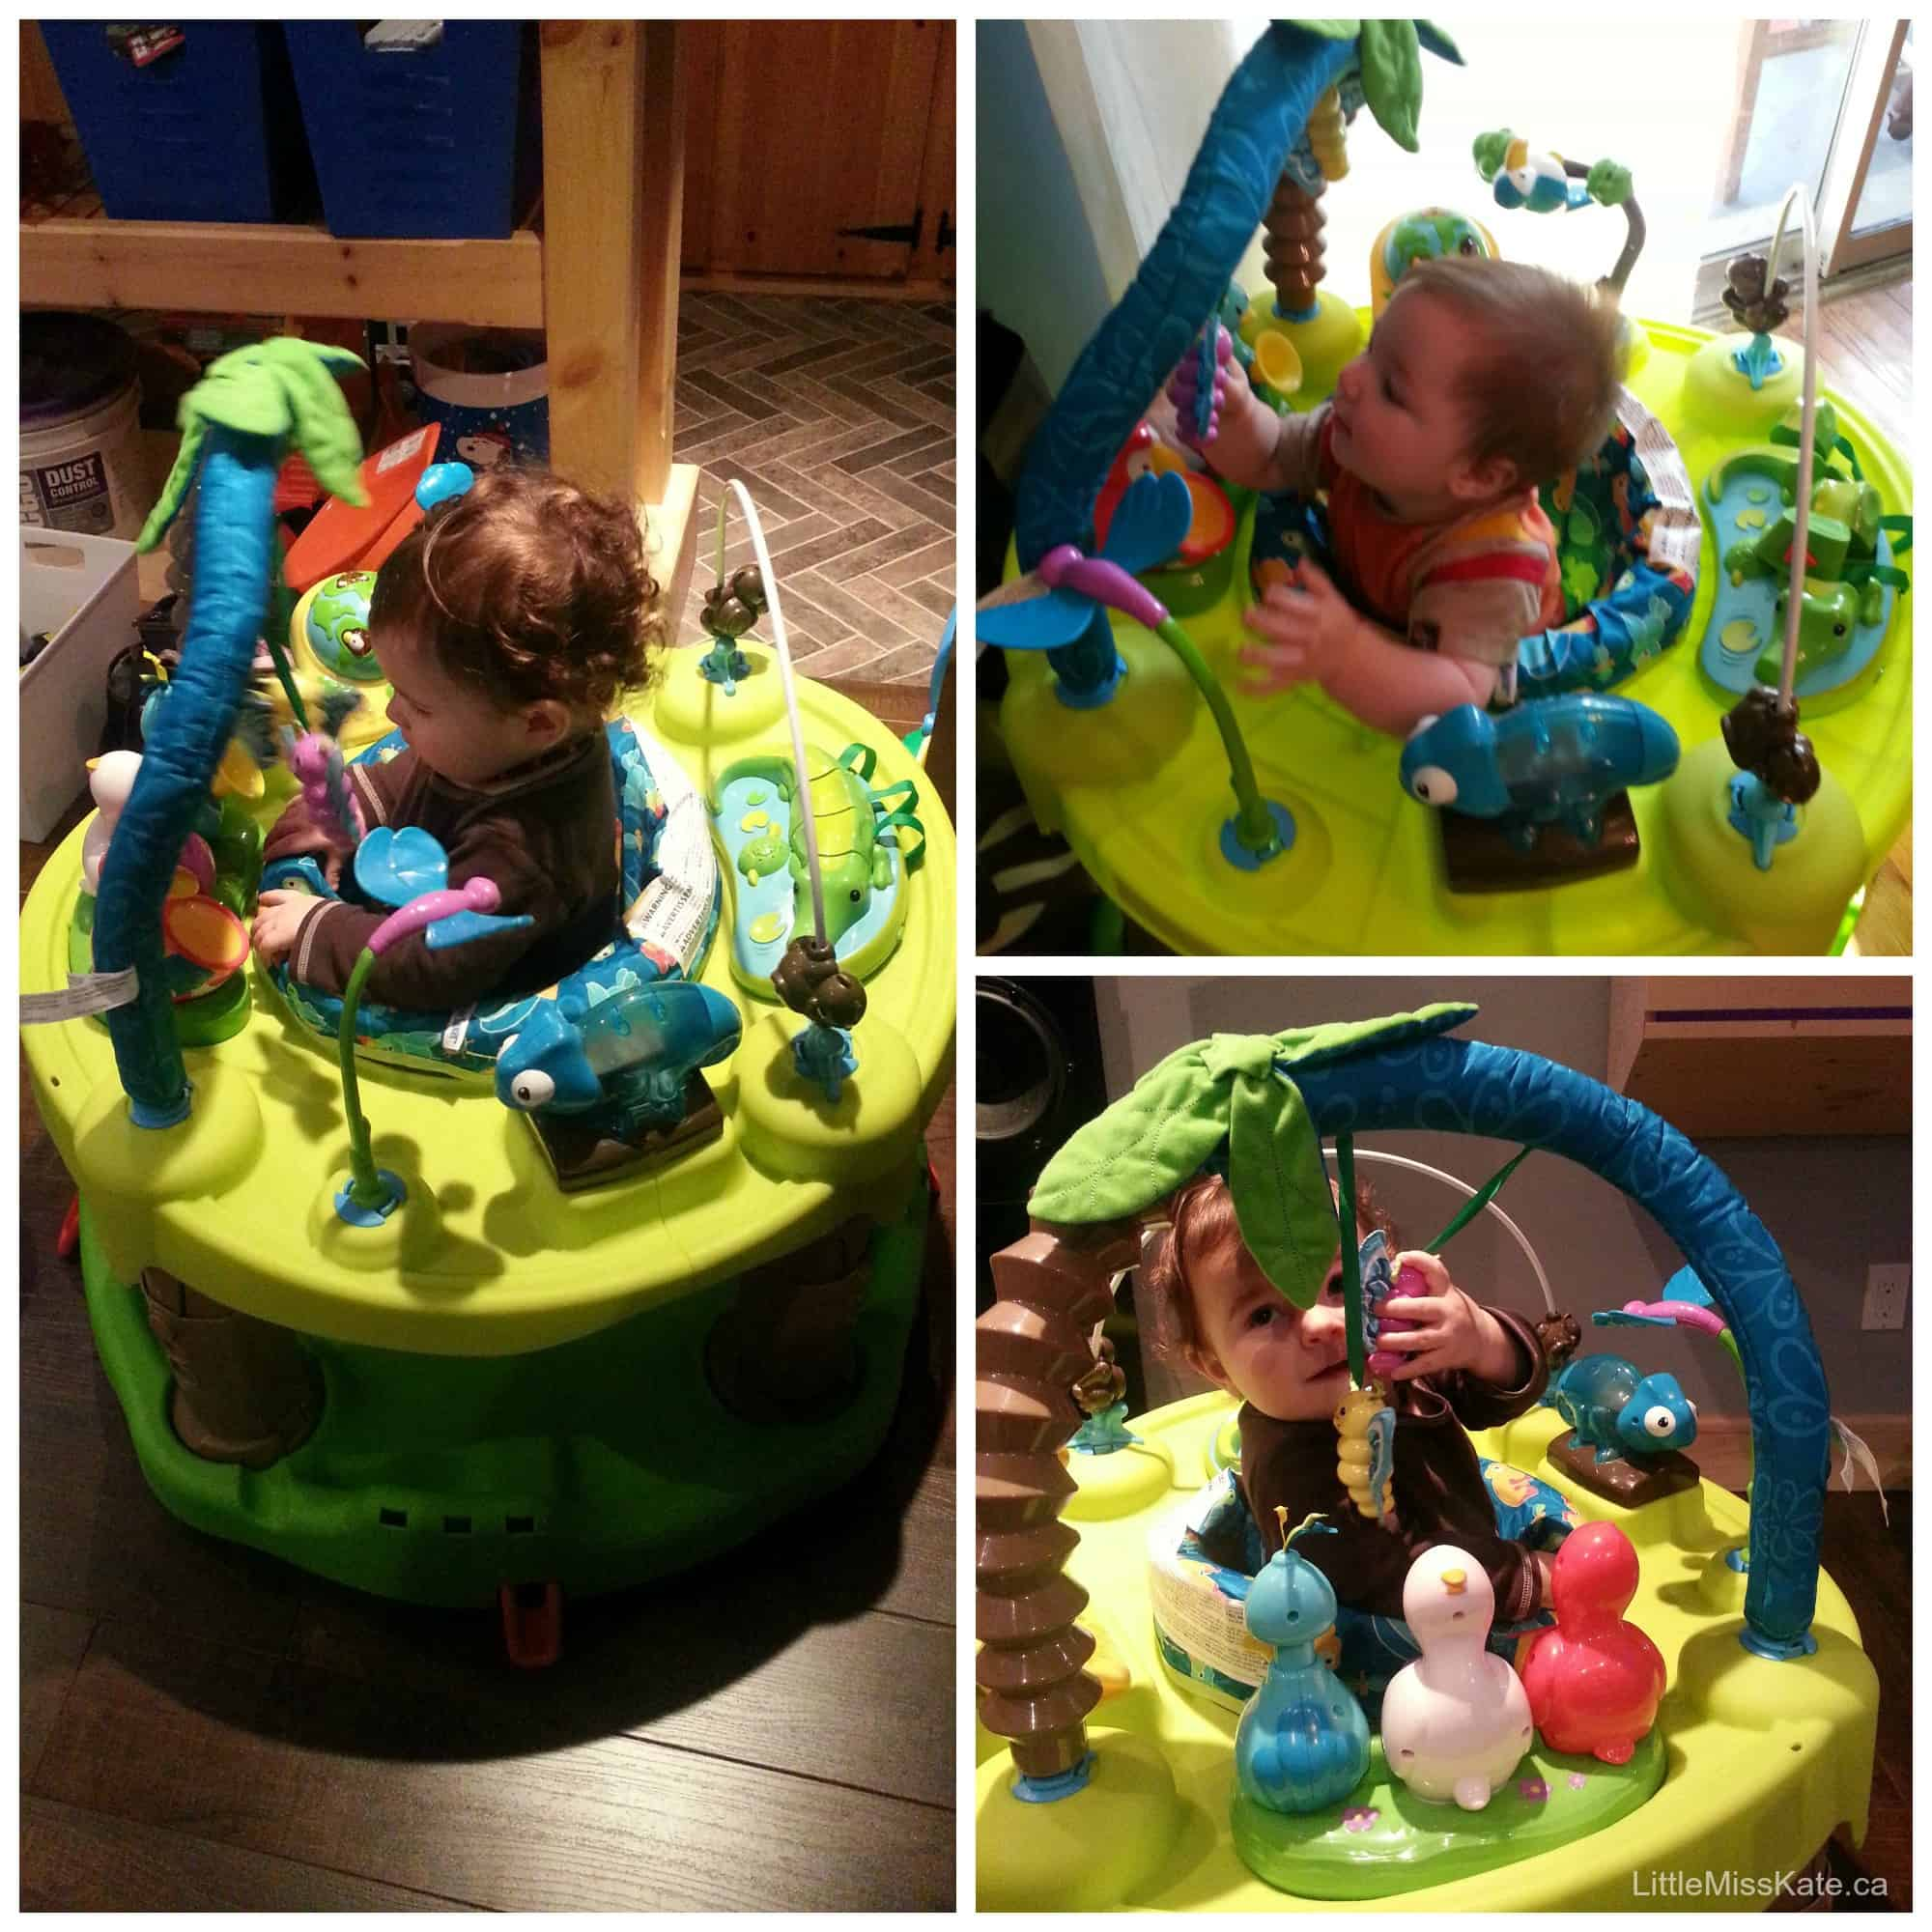 Saving Space With The Evenflo Exersaucer Triple Fun